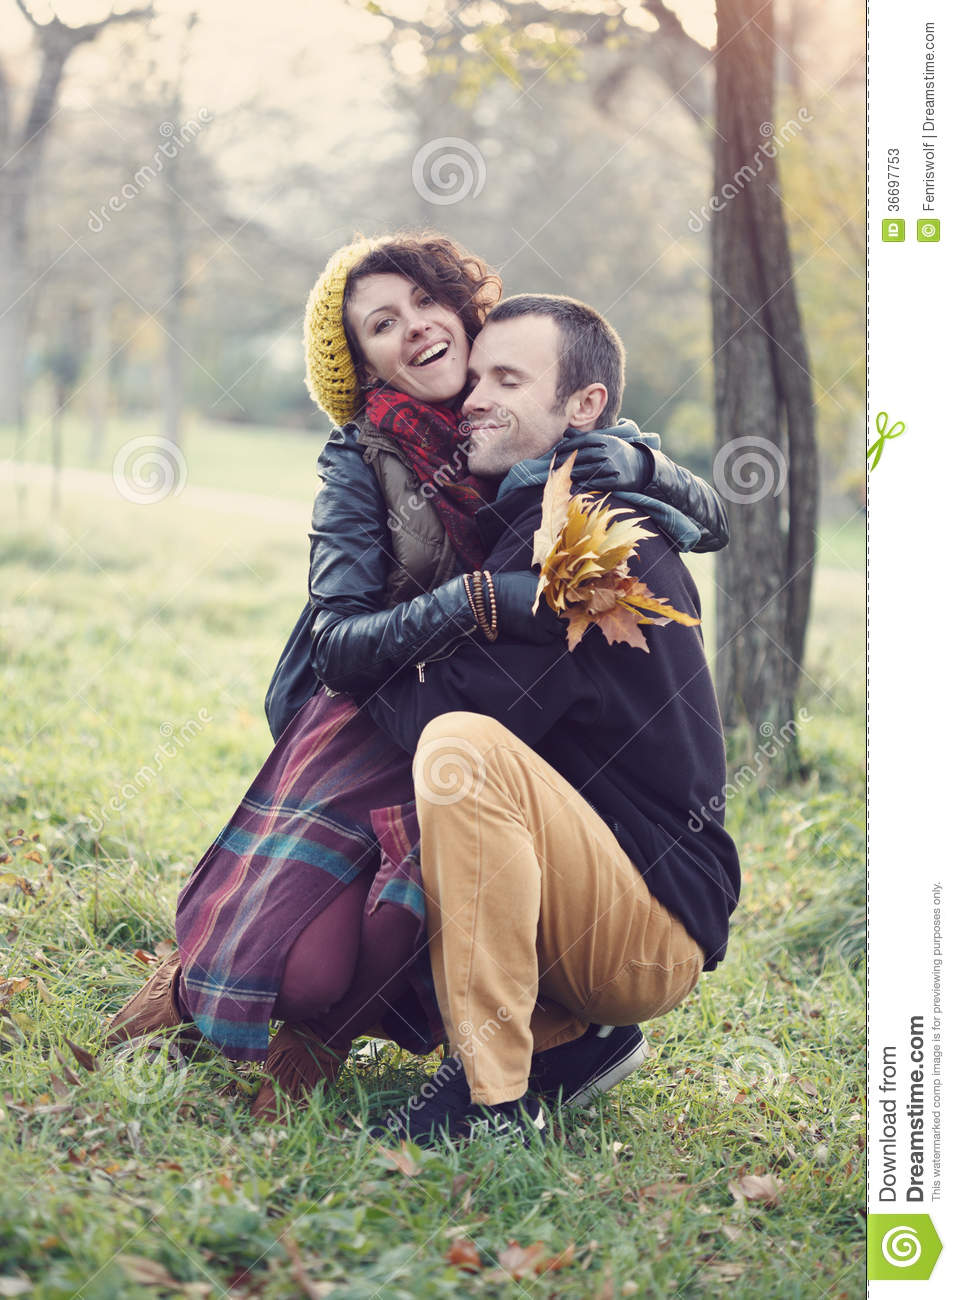 Loving couple hugging in the park. Loving Couple Hugging In The Park Stock Photos   Image  36697753